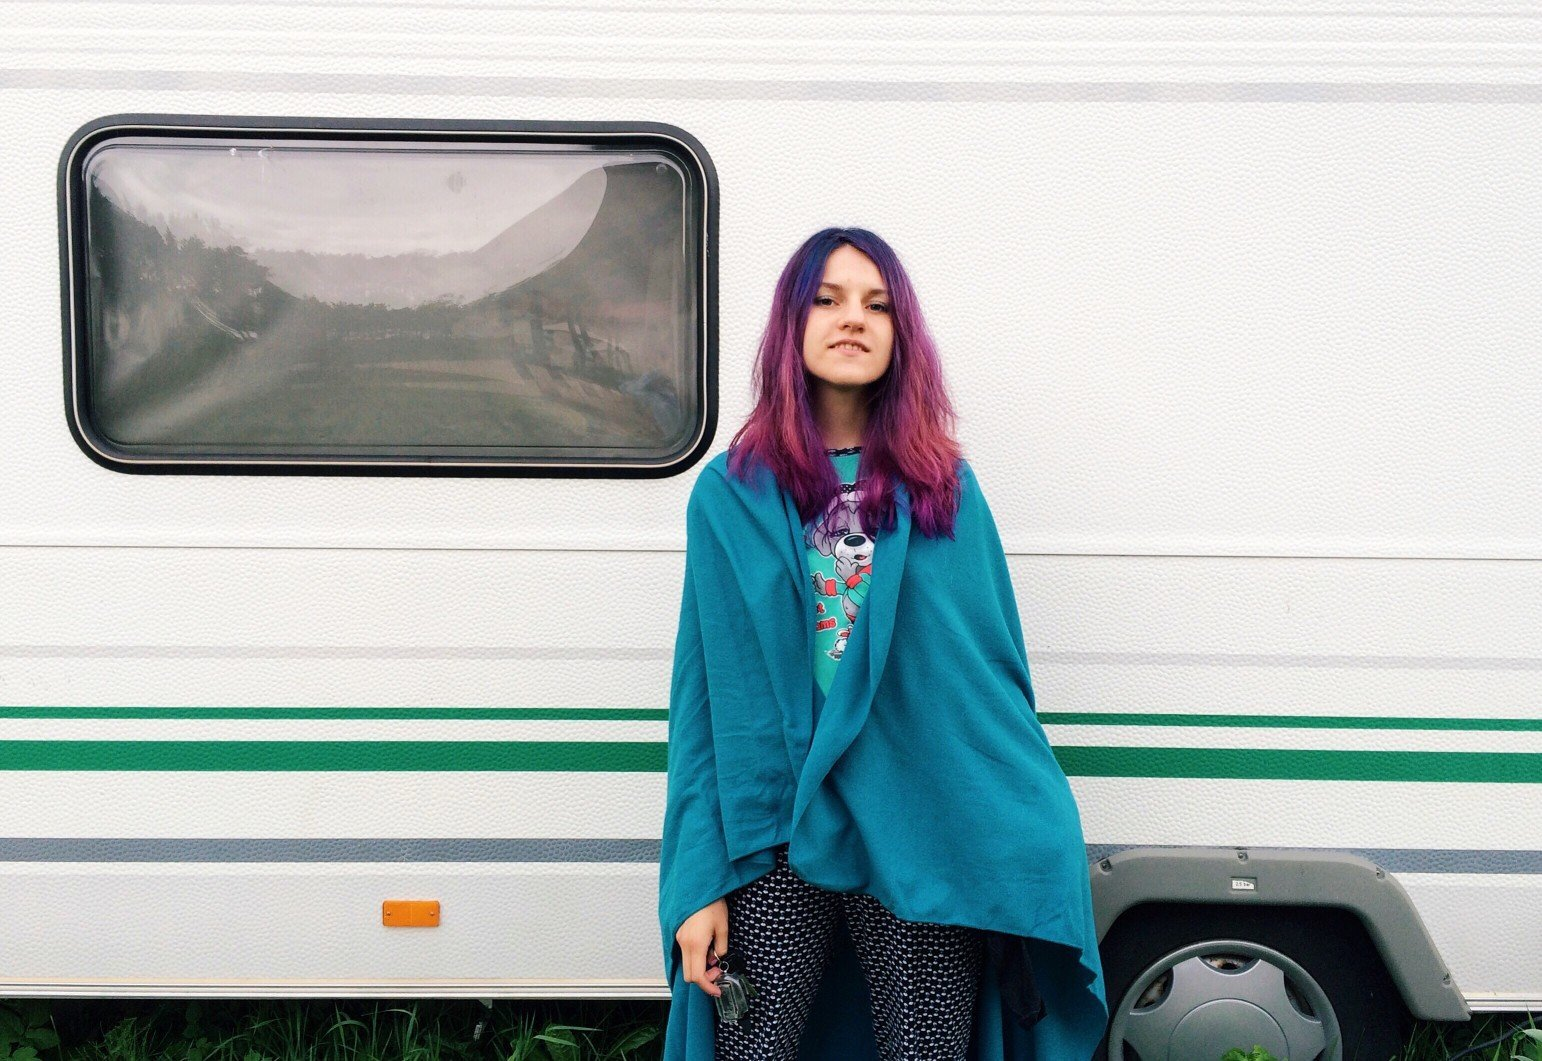 How To Live In A Camper?